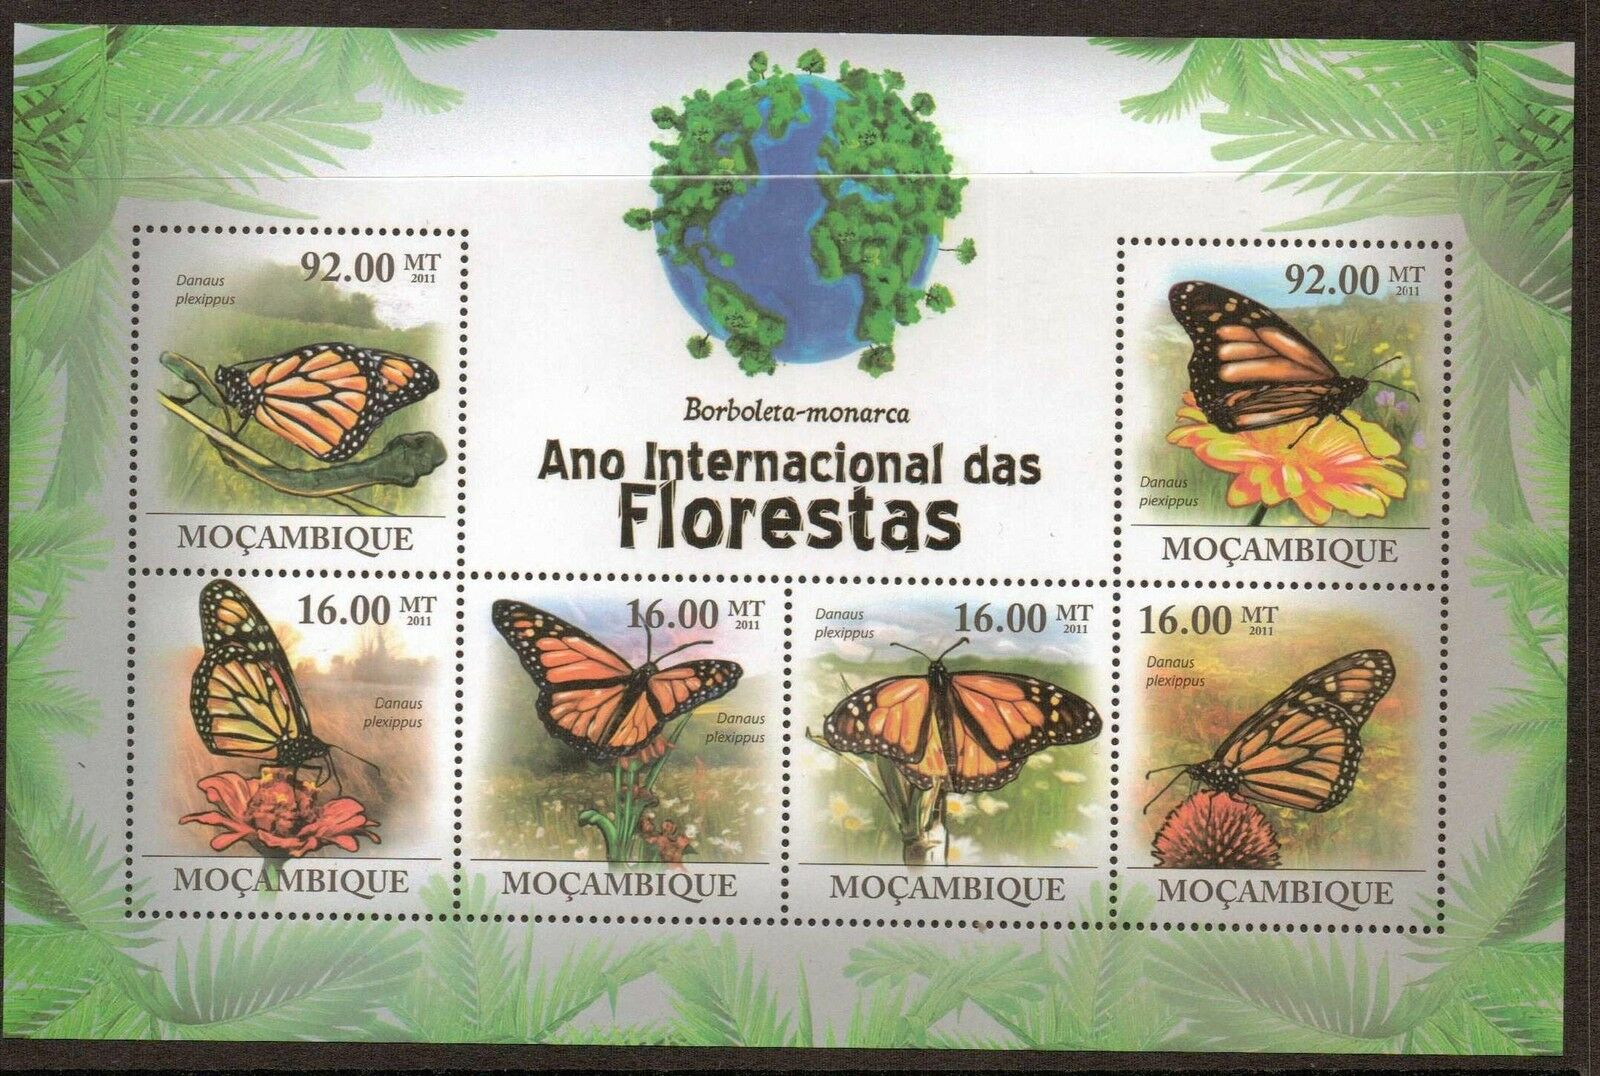 MOZAMBIQUE 2011 BUTTERFLIES SHEETLET MNH